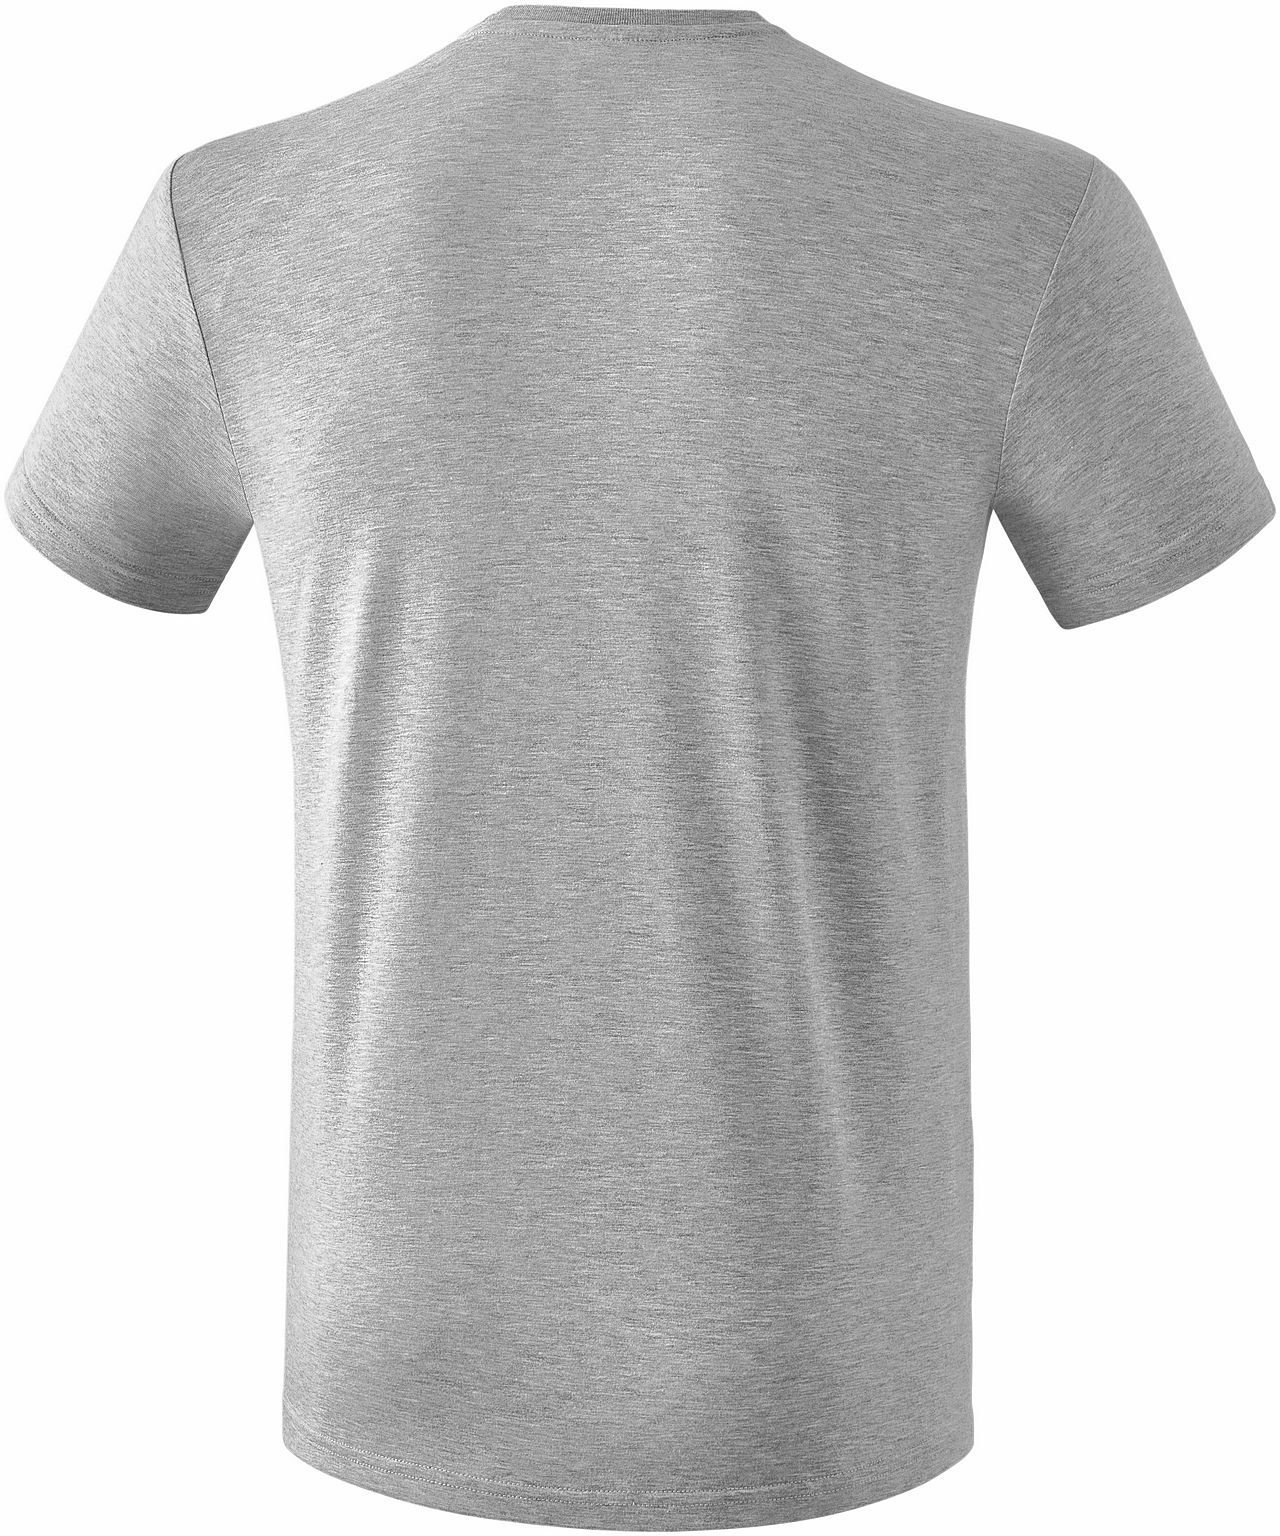 Essential T-Shirt Herren Kinder